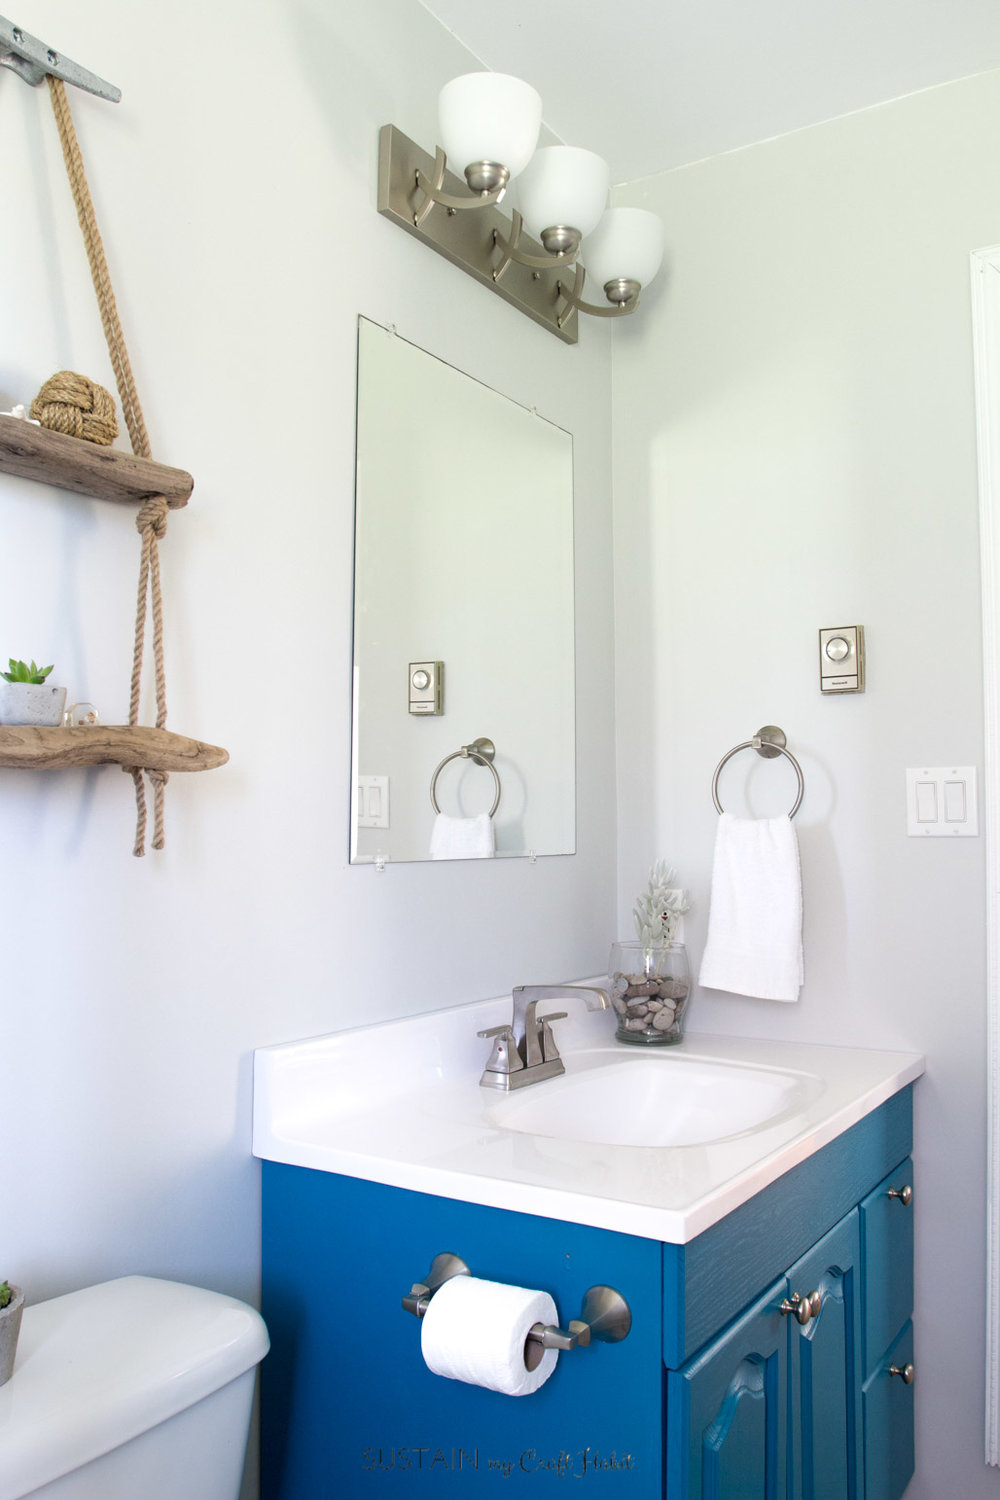 Love this teal pop of colour in this gorgeous small beach theme bathroom remodel. So many fun DIY ideas to give a room that relaxing coastal vibe.